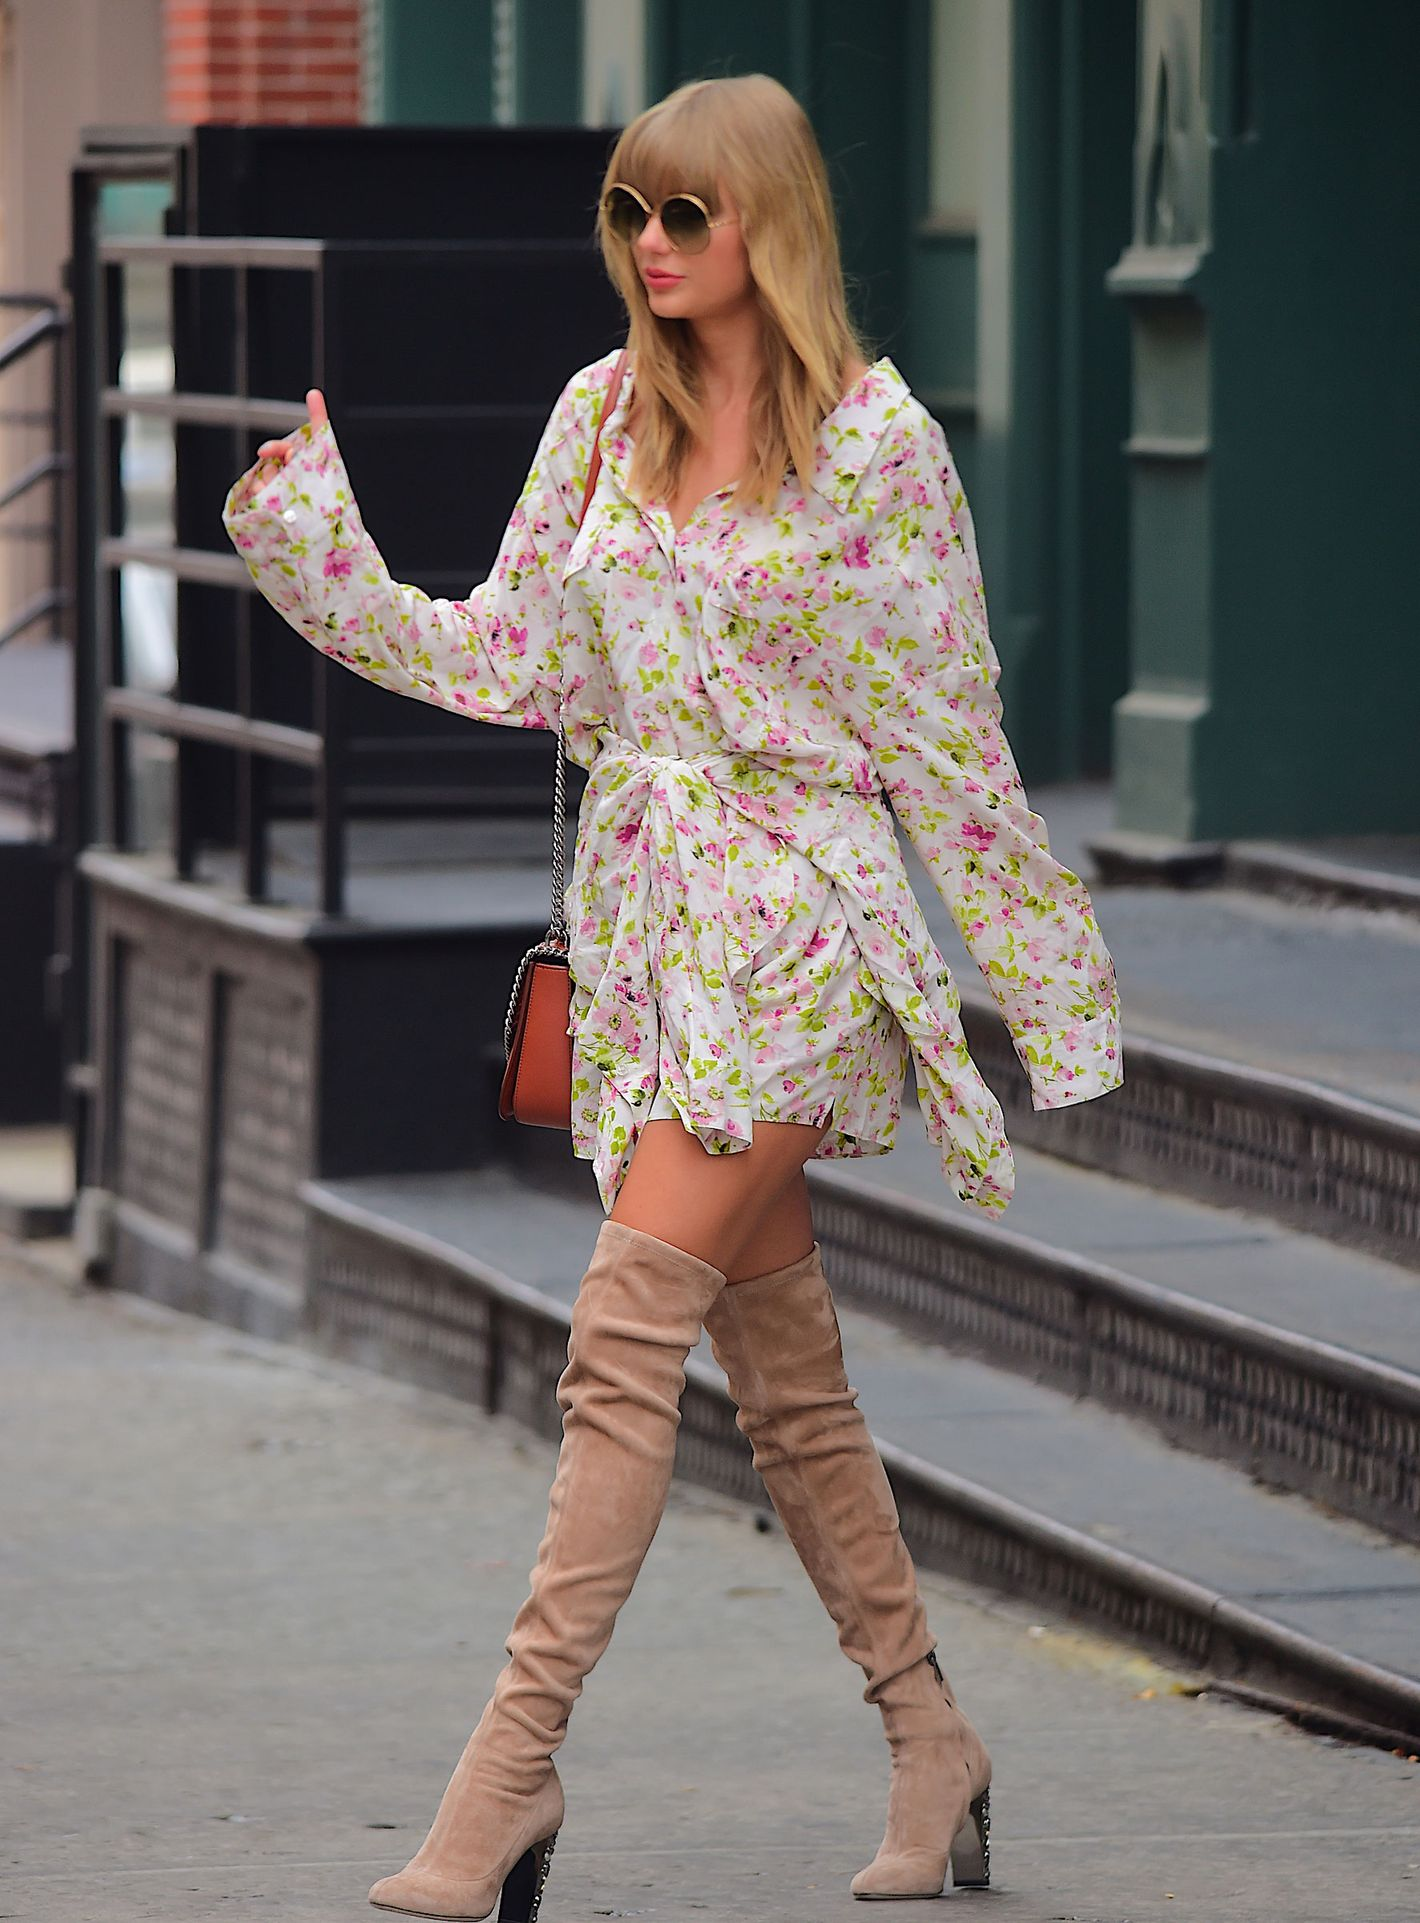 taylor son swift et son taylor style unique sont de retour à new york b7ac91